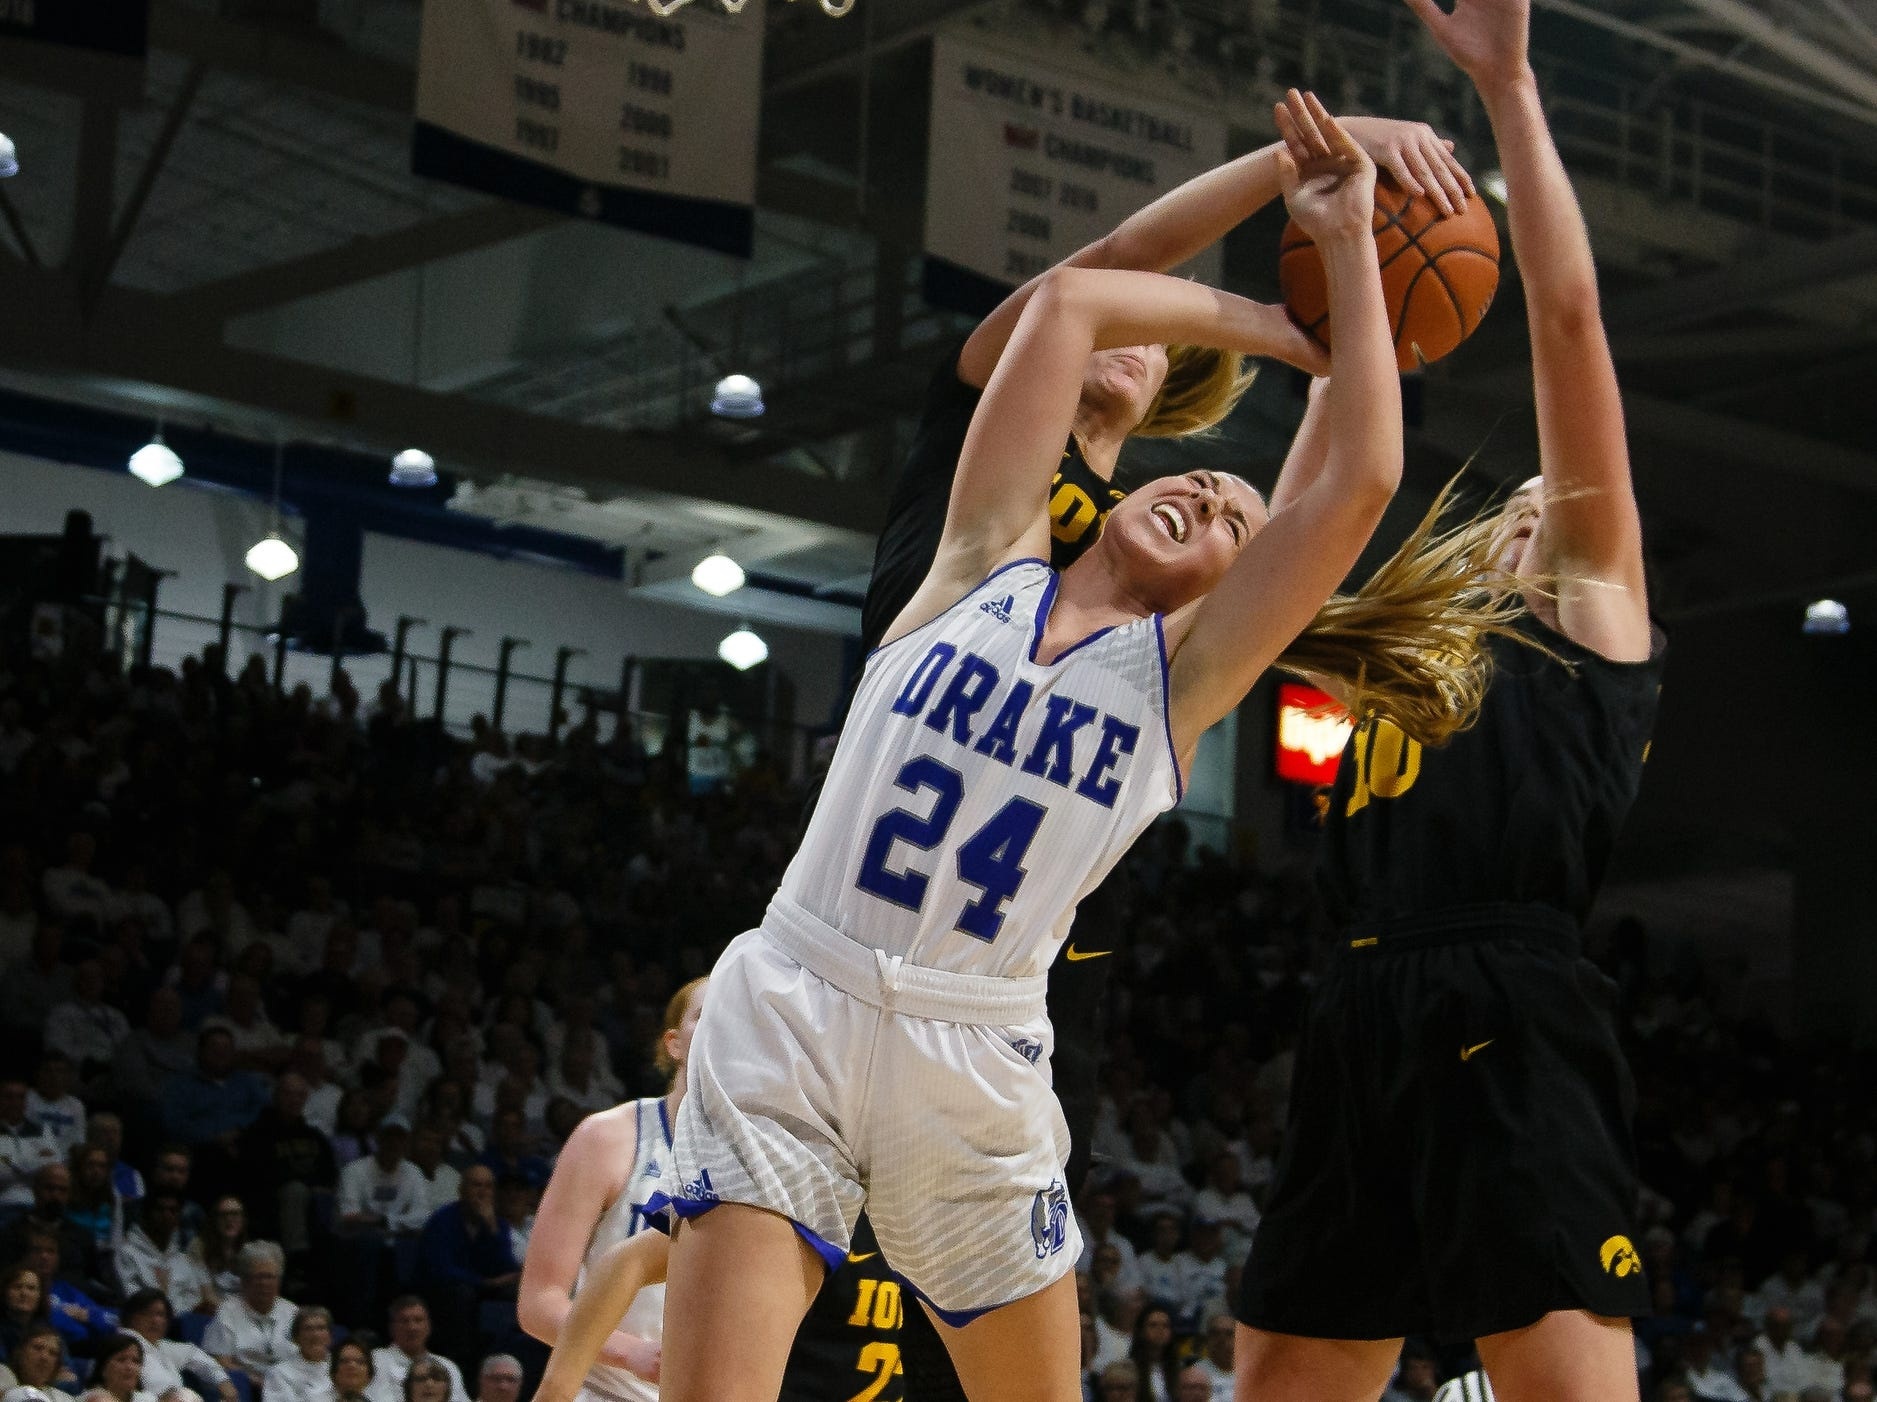 Drake's NicoleÊMiller (24) is fouled as she goes up for a shot during their basketball game on Friday, Dec. 21, 2018, in Des Moines. Iowa would go on to defeat Drake 91-82.